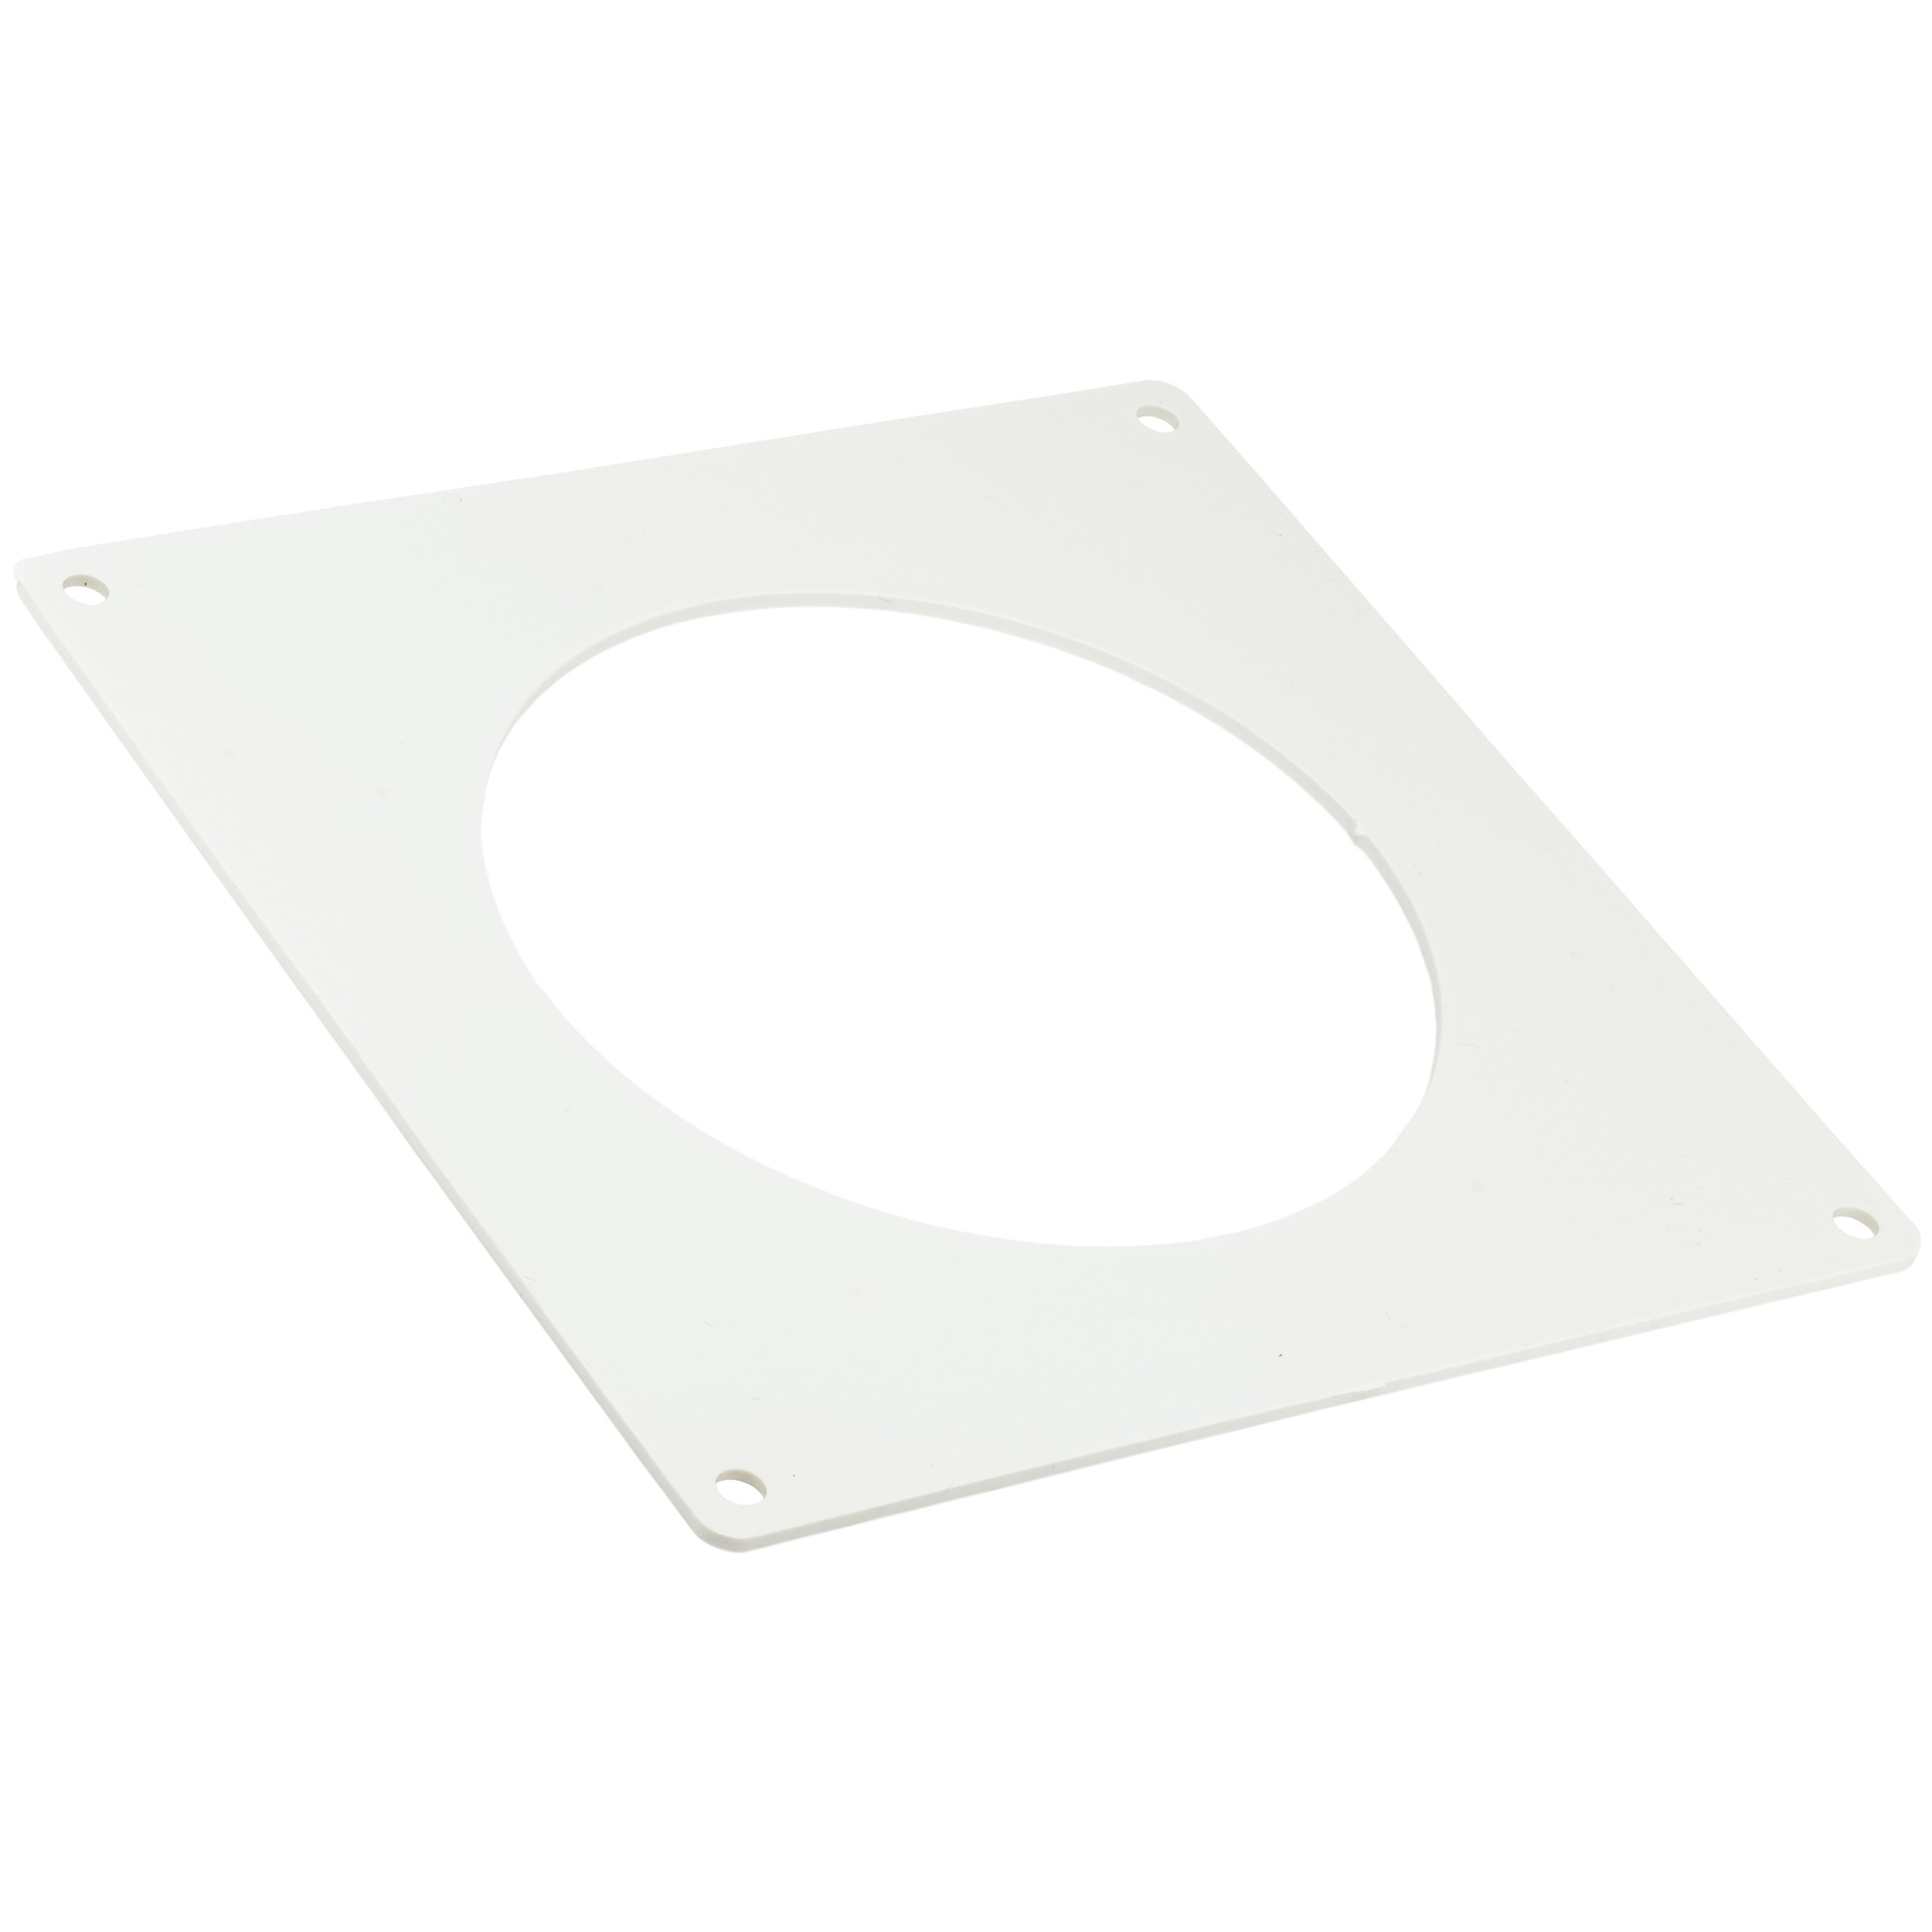 Manrose Round Ducting Pipe Wall Plate - White, 150mm